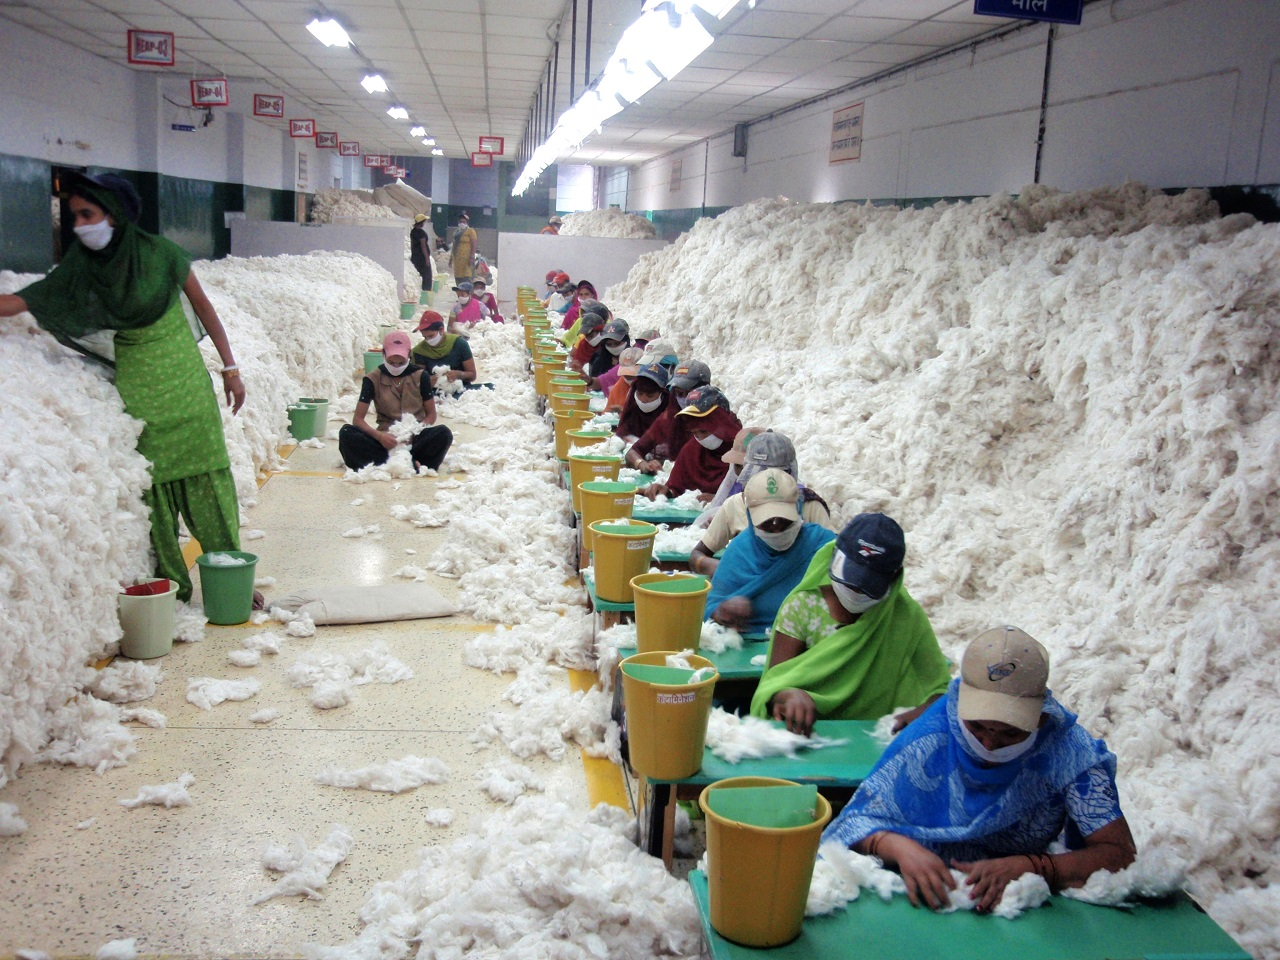 cotton_before_processing_at_an_Indian_spinning_mill_wikimedia